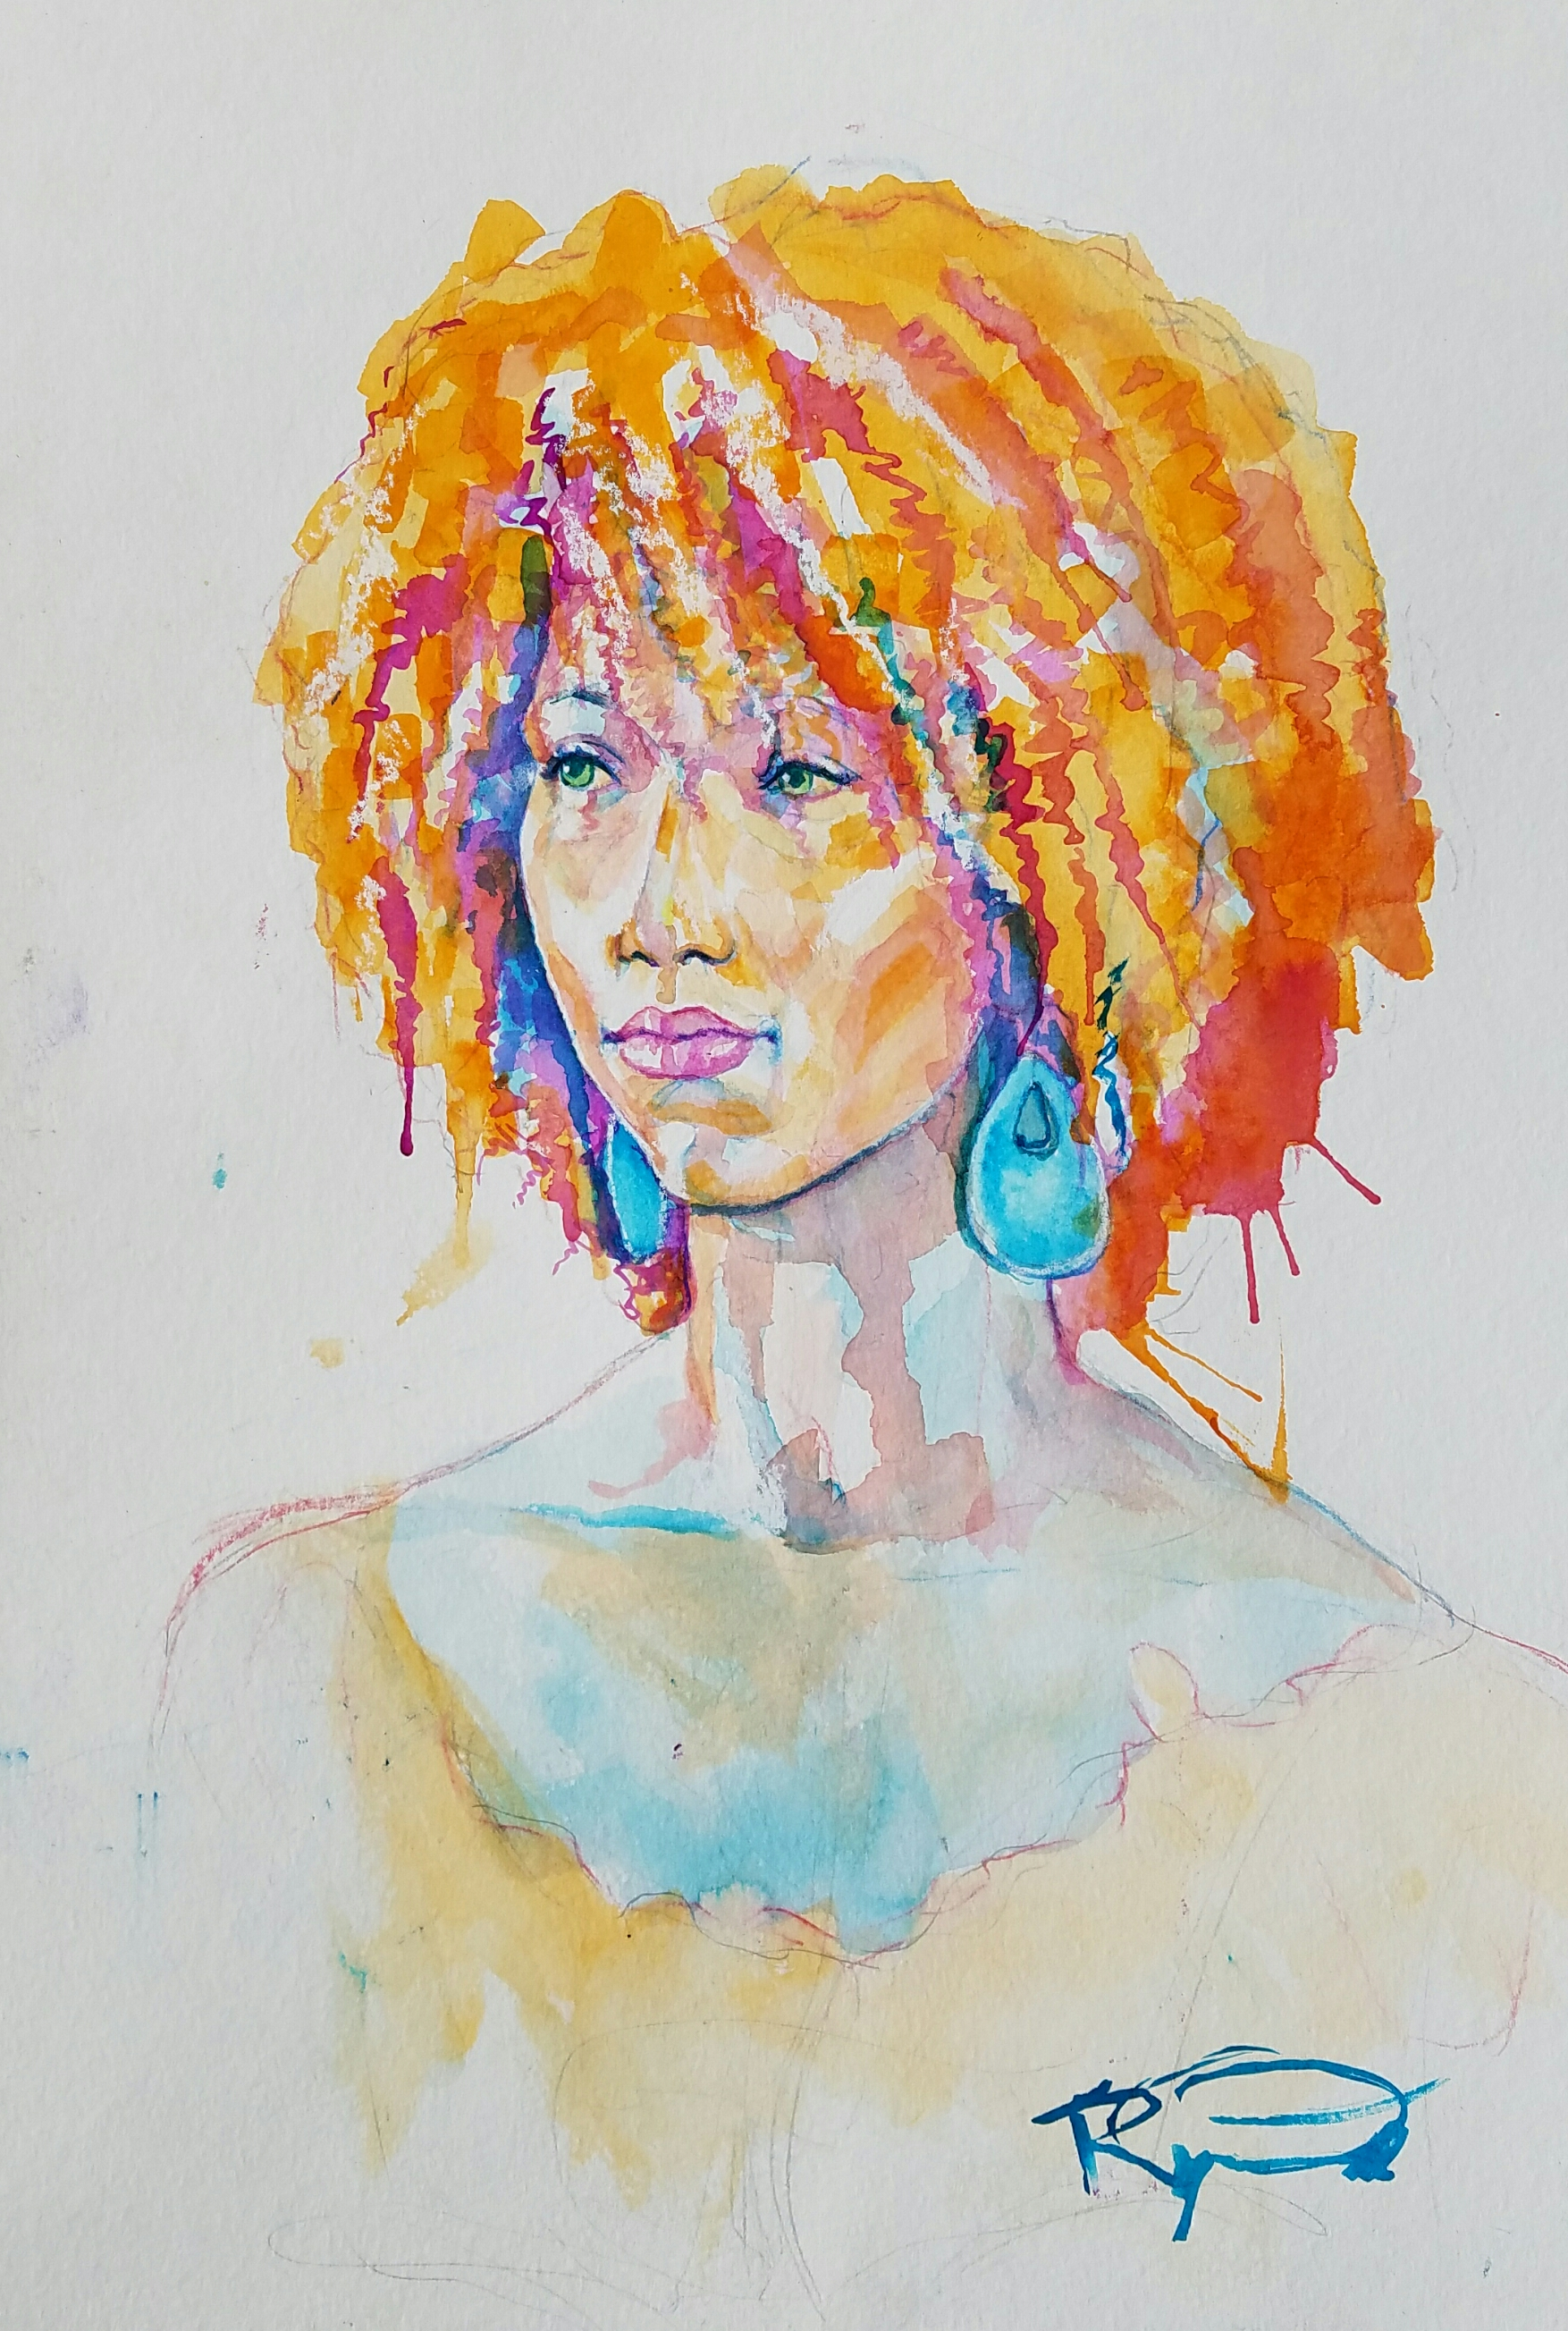 Ryan Oddo did this 3-hour watercolor and pastel drawing.